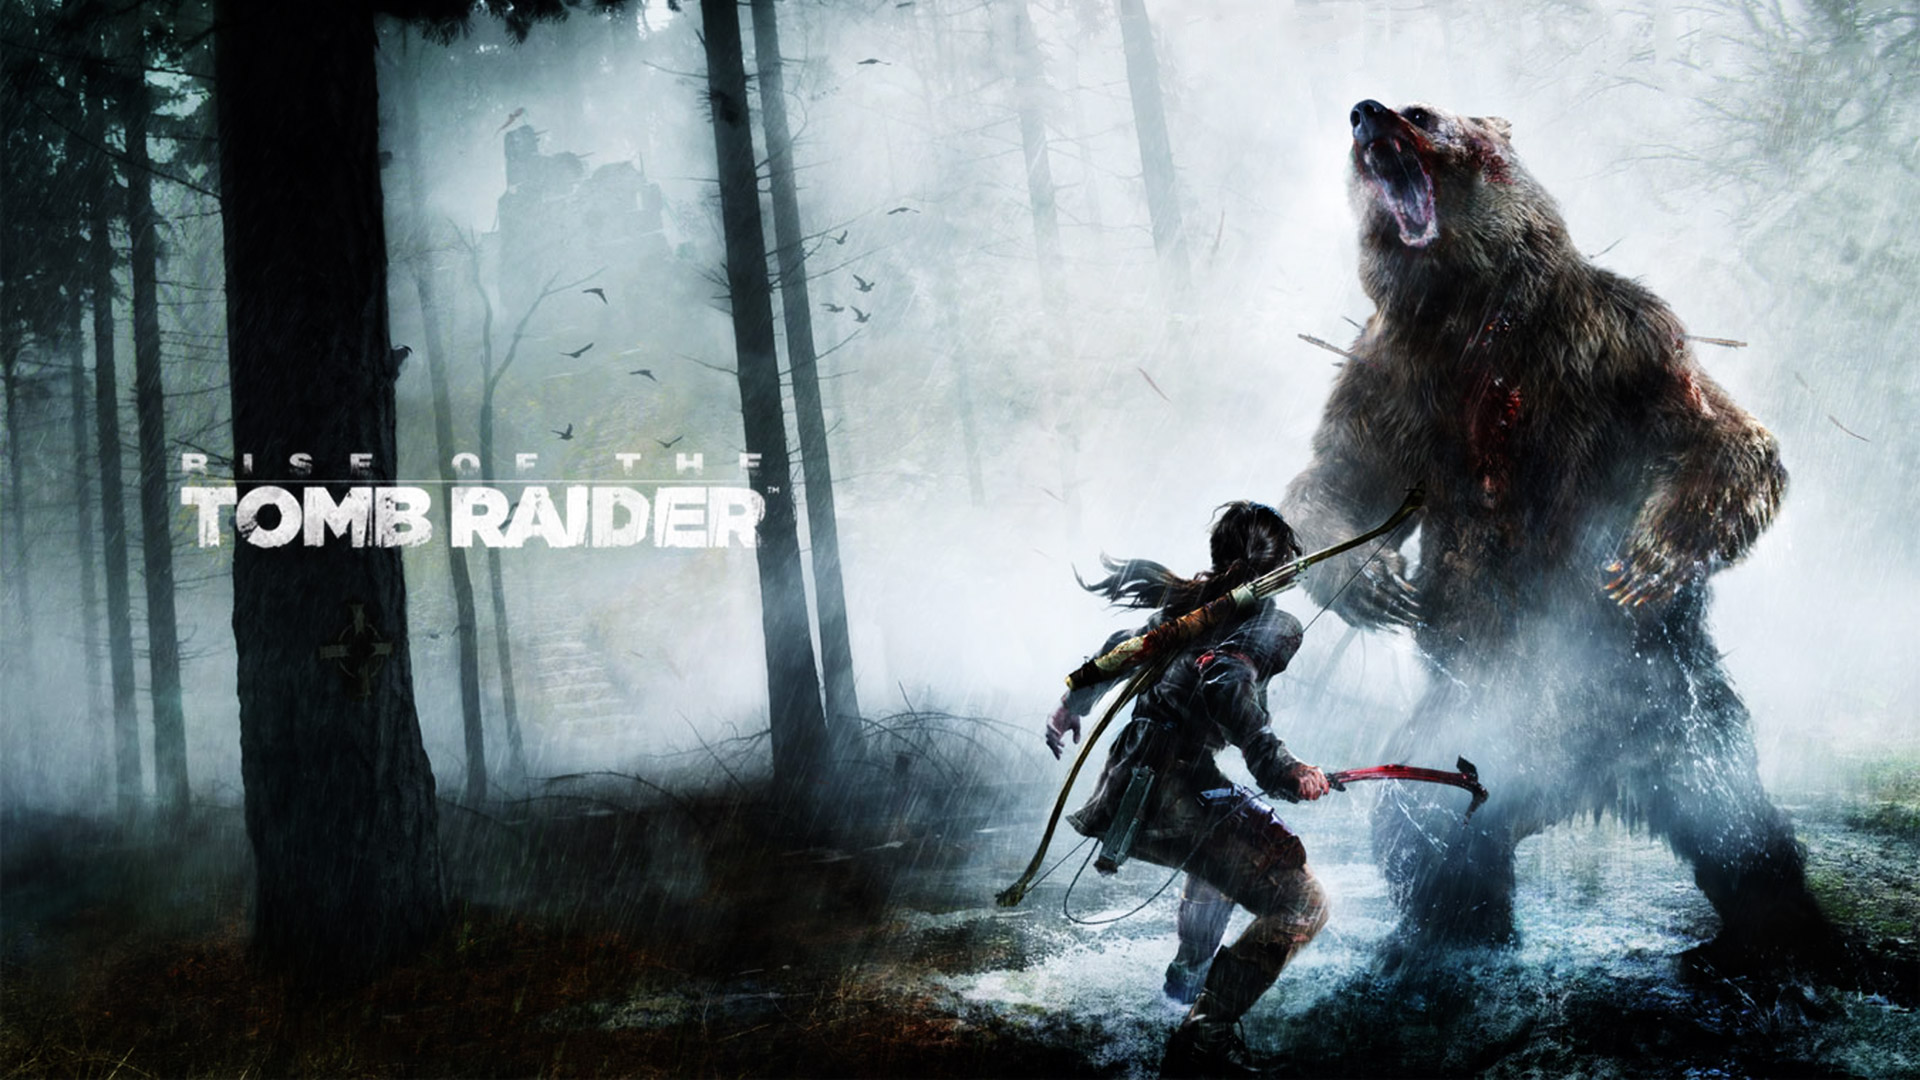 Rise of the Tomb Raider Wallpaper in 1920x1080